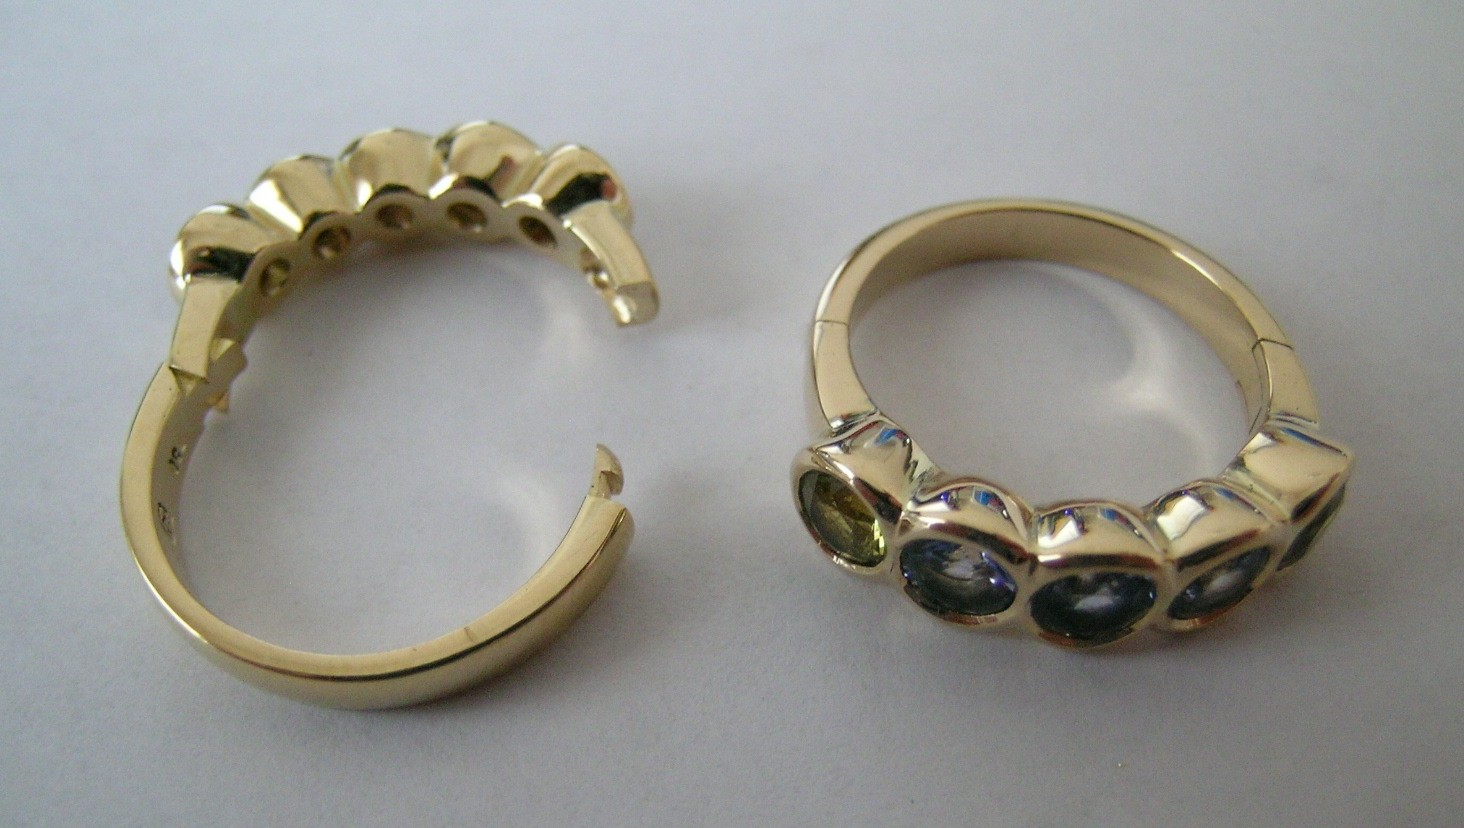 Hinged Ring For Difficult To Fit Fingers